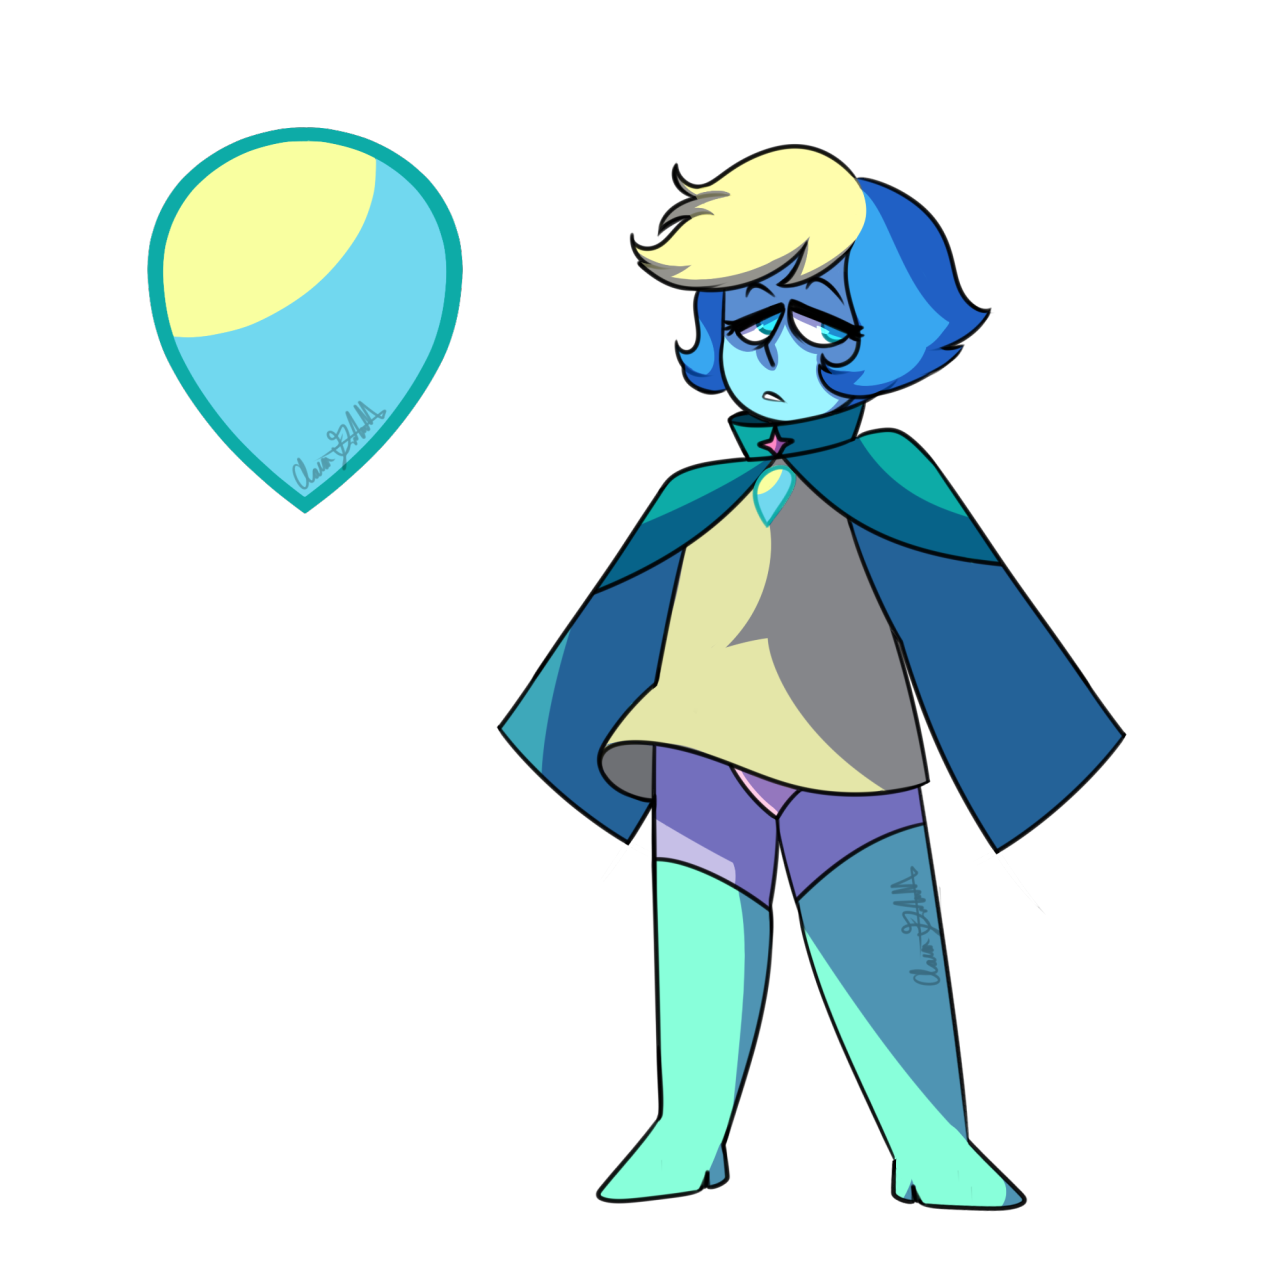 @papayapanda and @digidrift made Gemsonas, so I decided to draw my bab with his new form! His weapon is Telekinesis, and his original Diamond was Pink Diamond, then Blue, then Yellow. Never met...